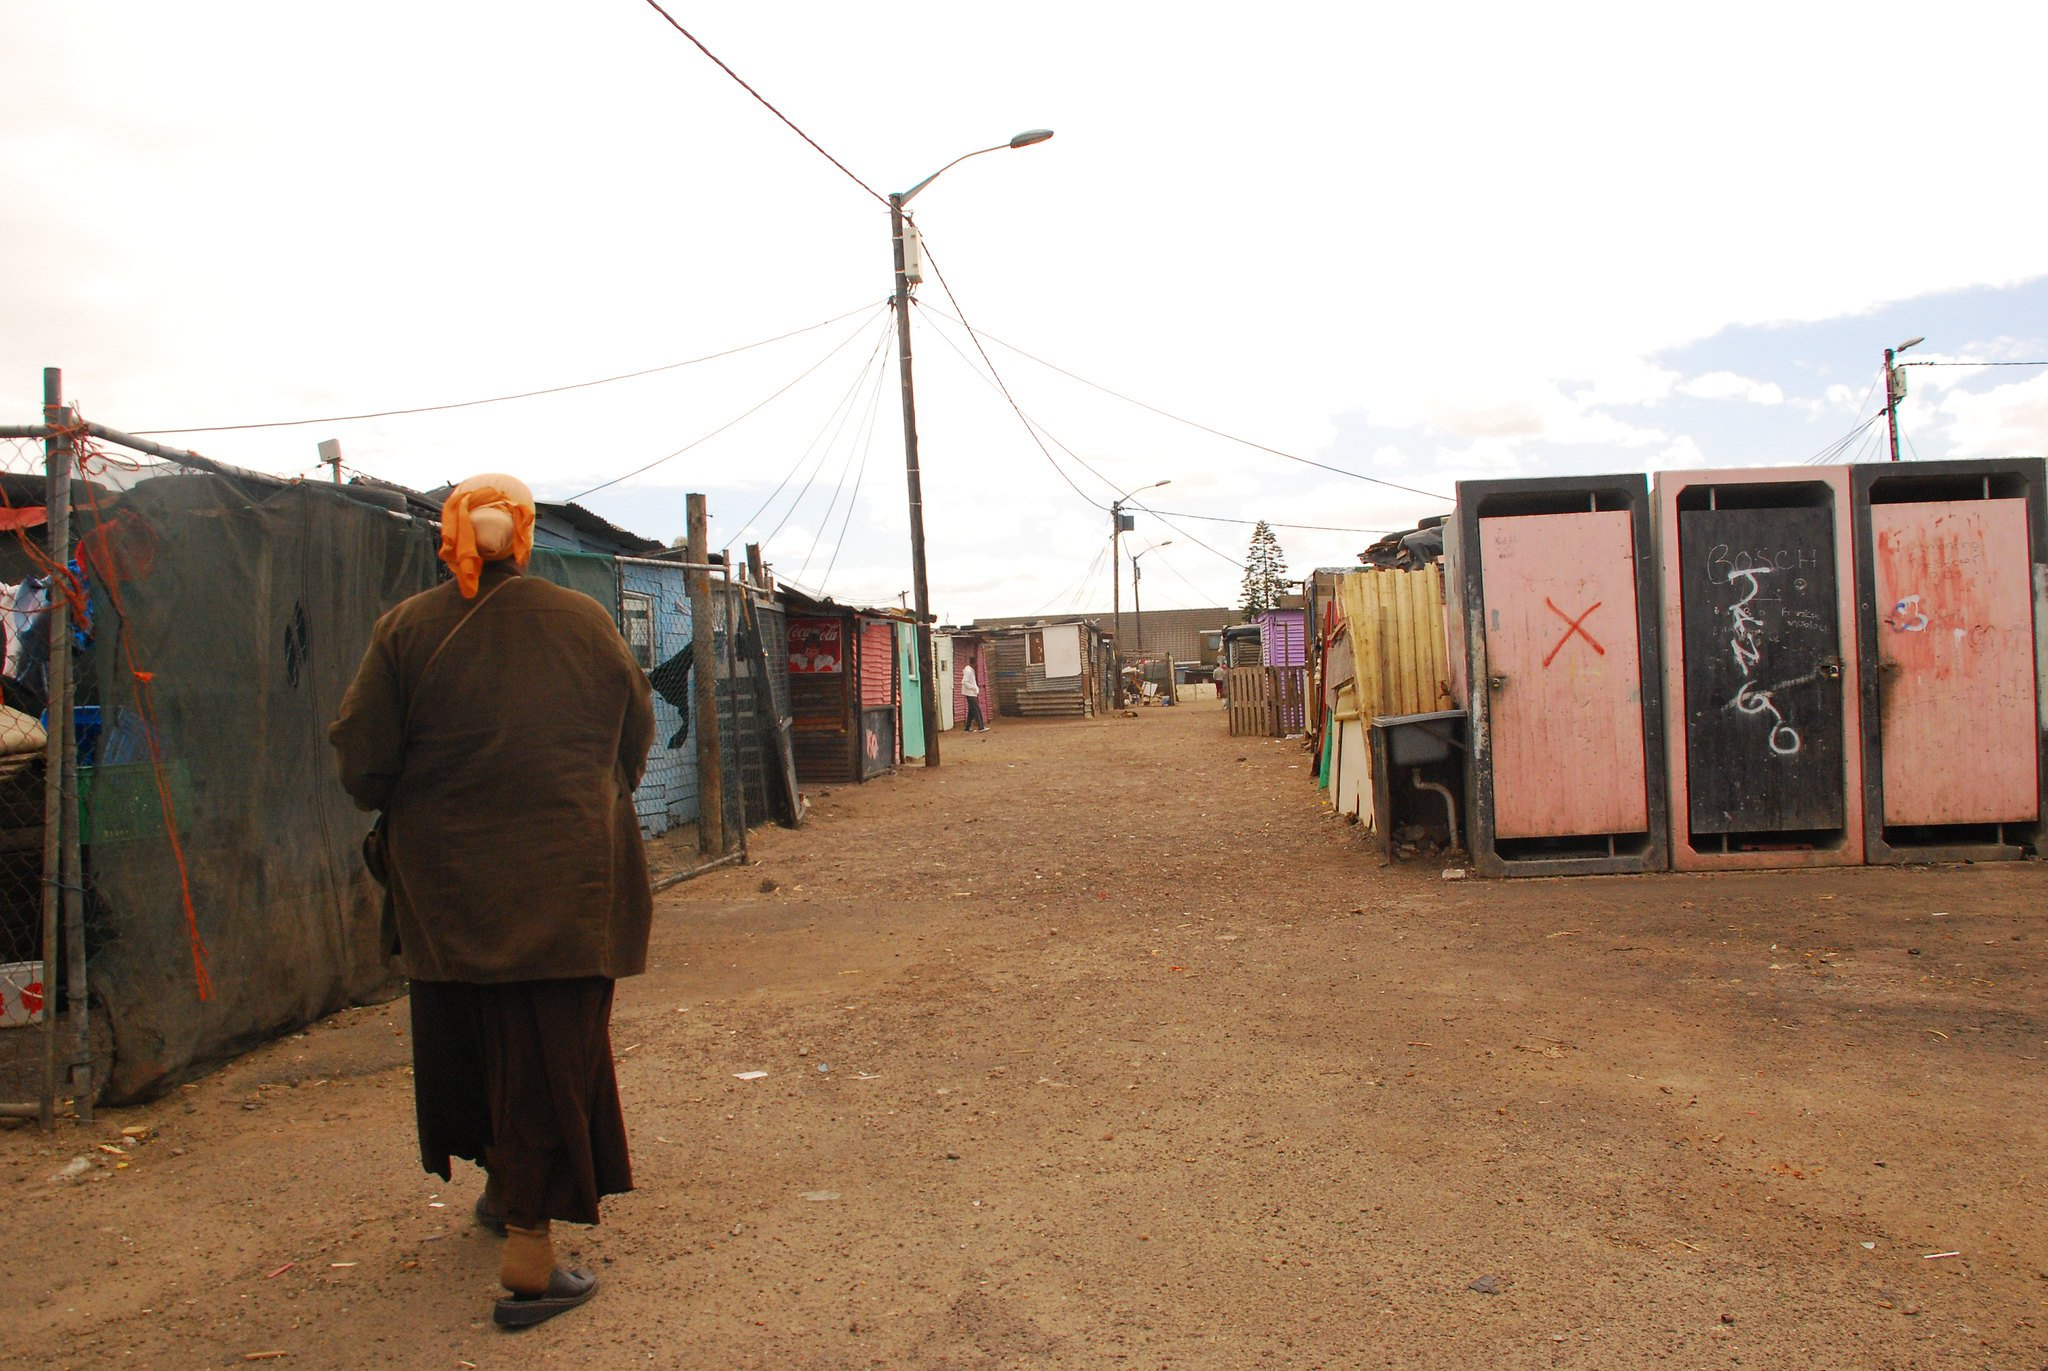 cape-town-cape-flats-south-africa-flickr